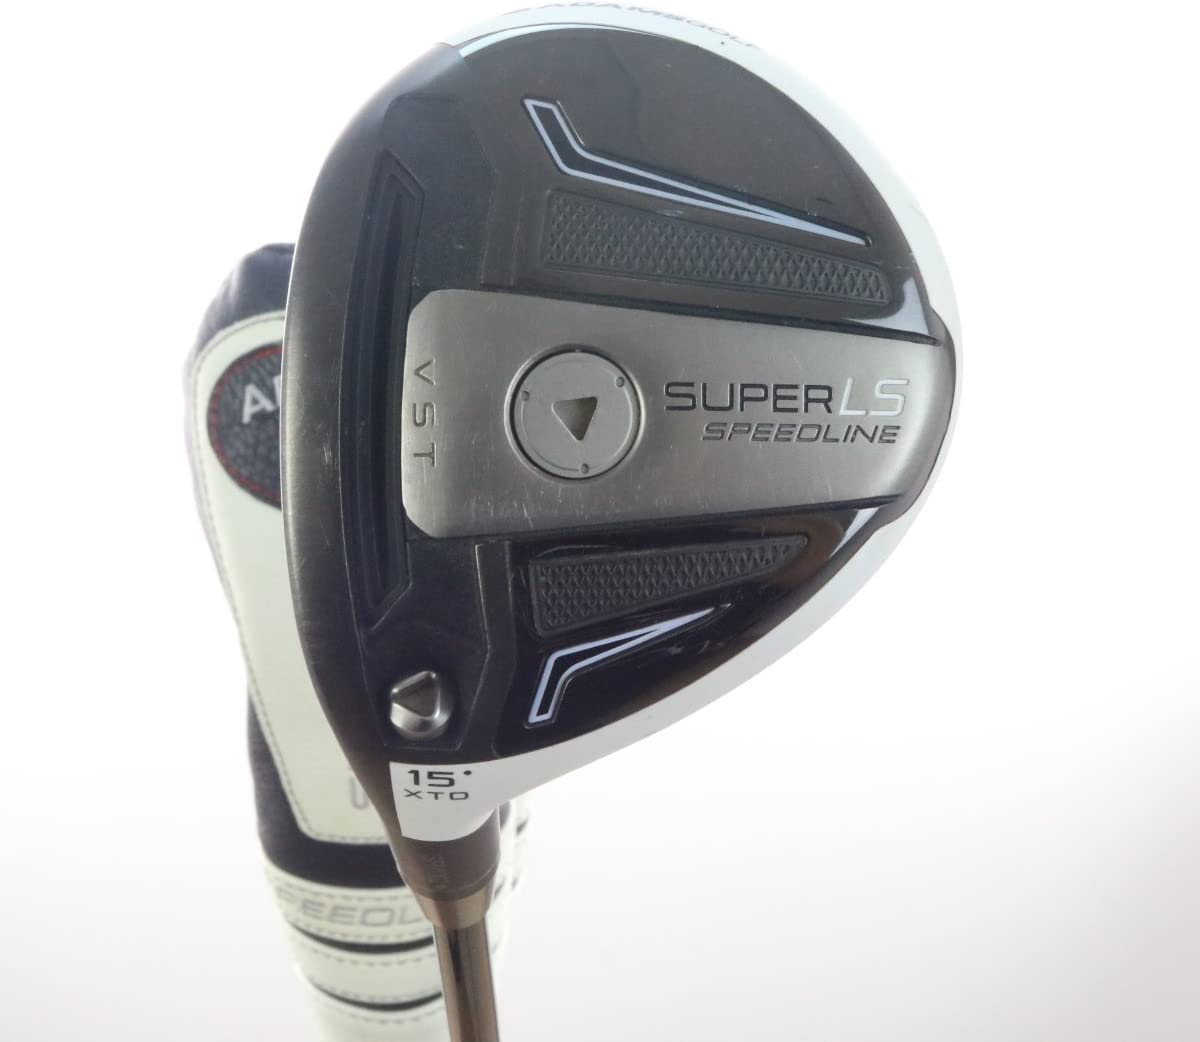 Adams Golf Speedline Super LS Golf Fairway Wood